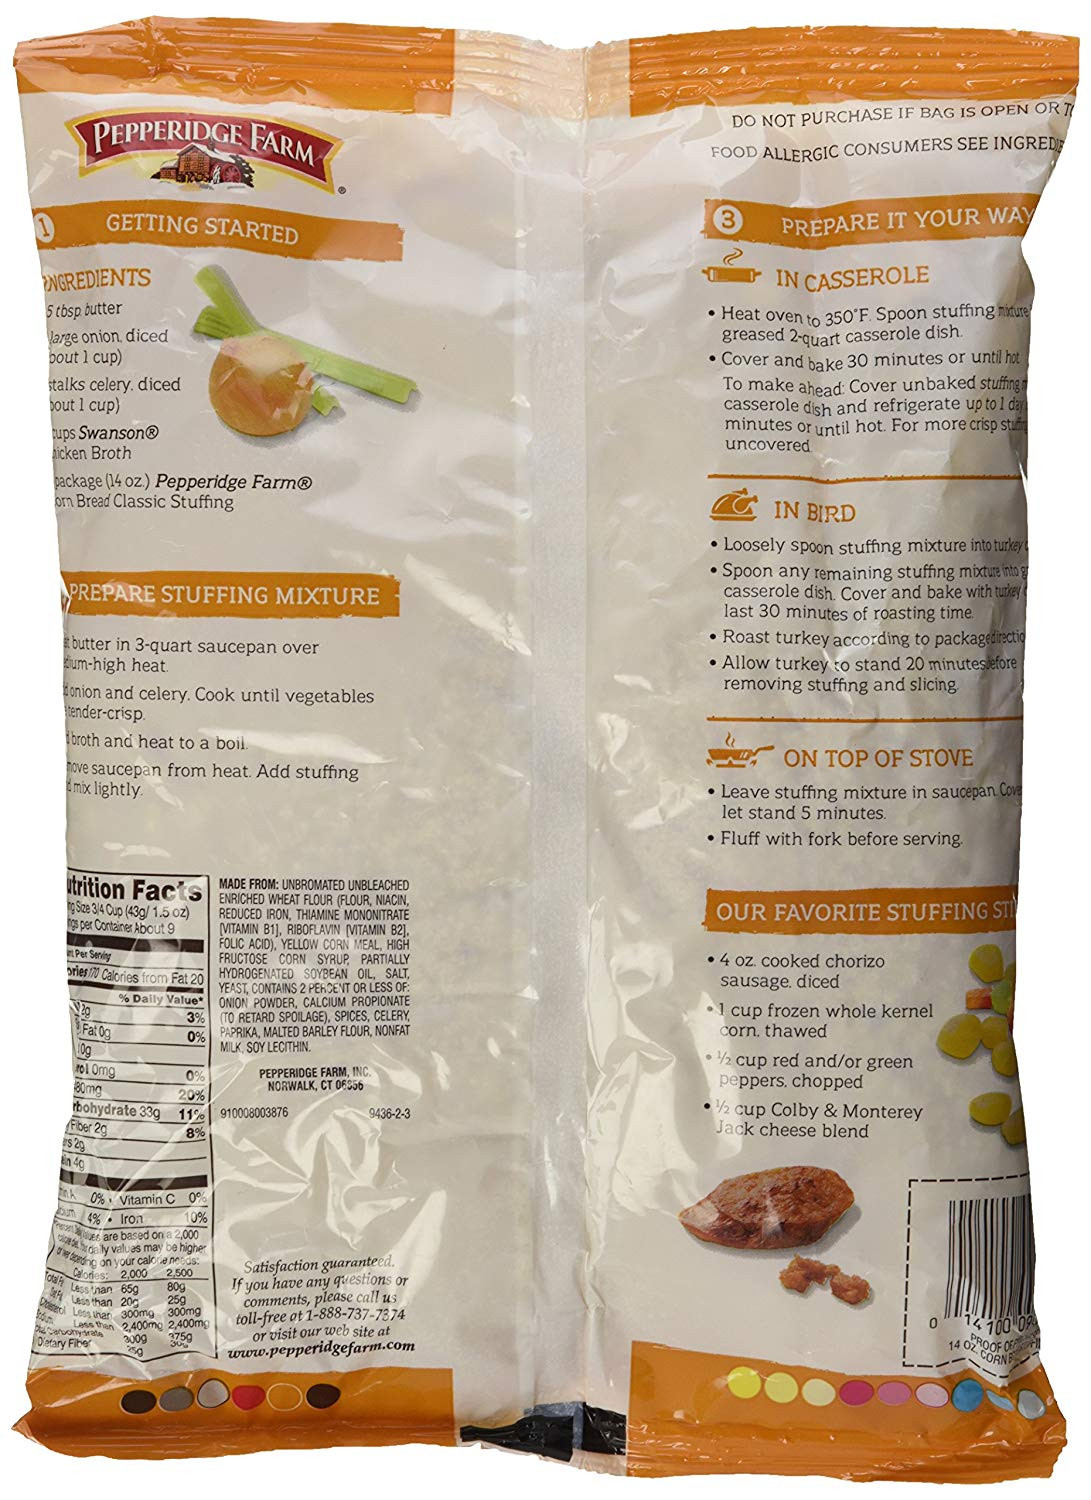 Pepperidge Farm Cornbread Stuffing  pepperidge farm cornbread stuffing instructions